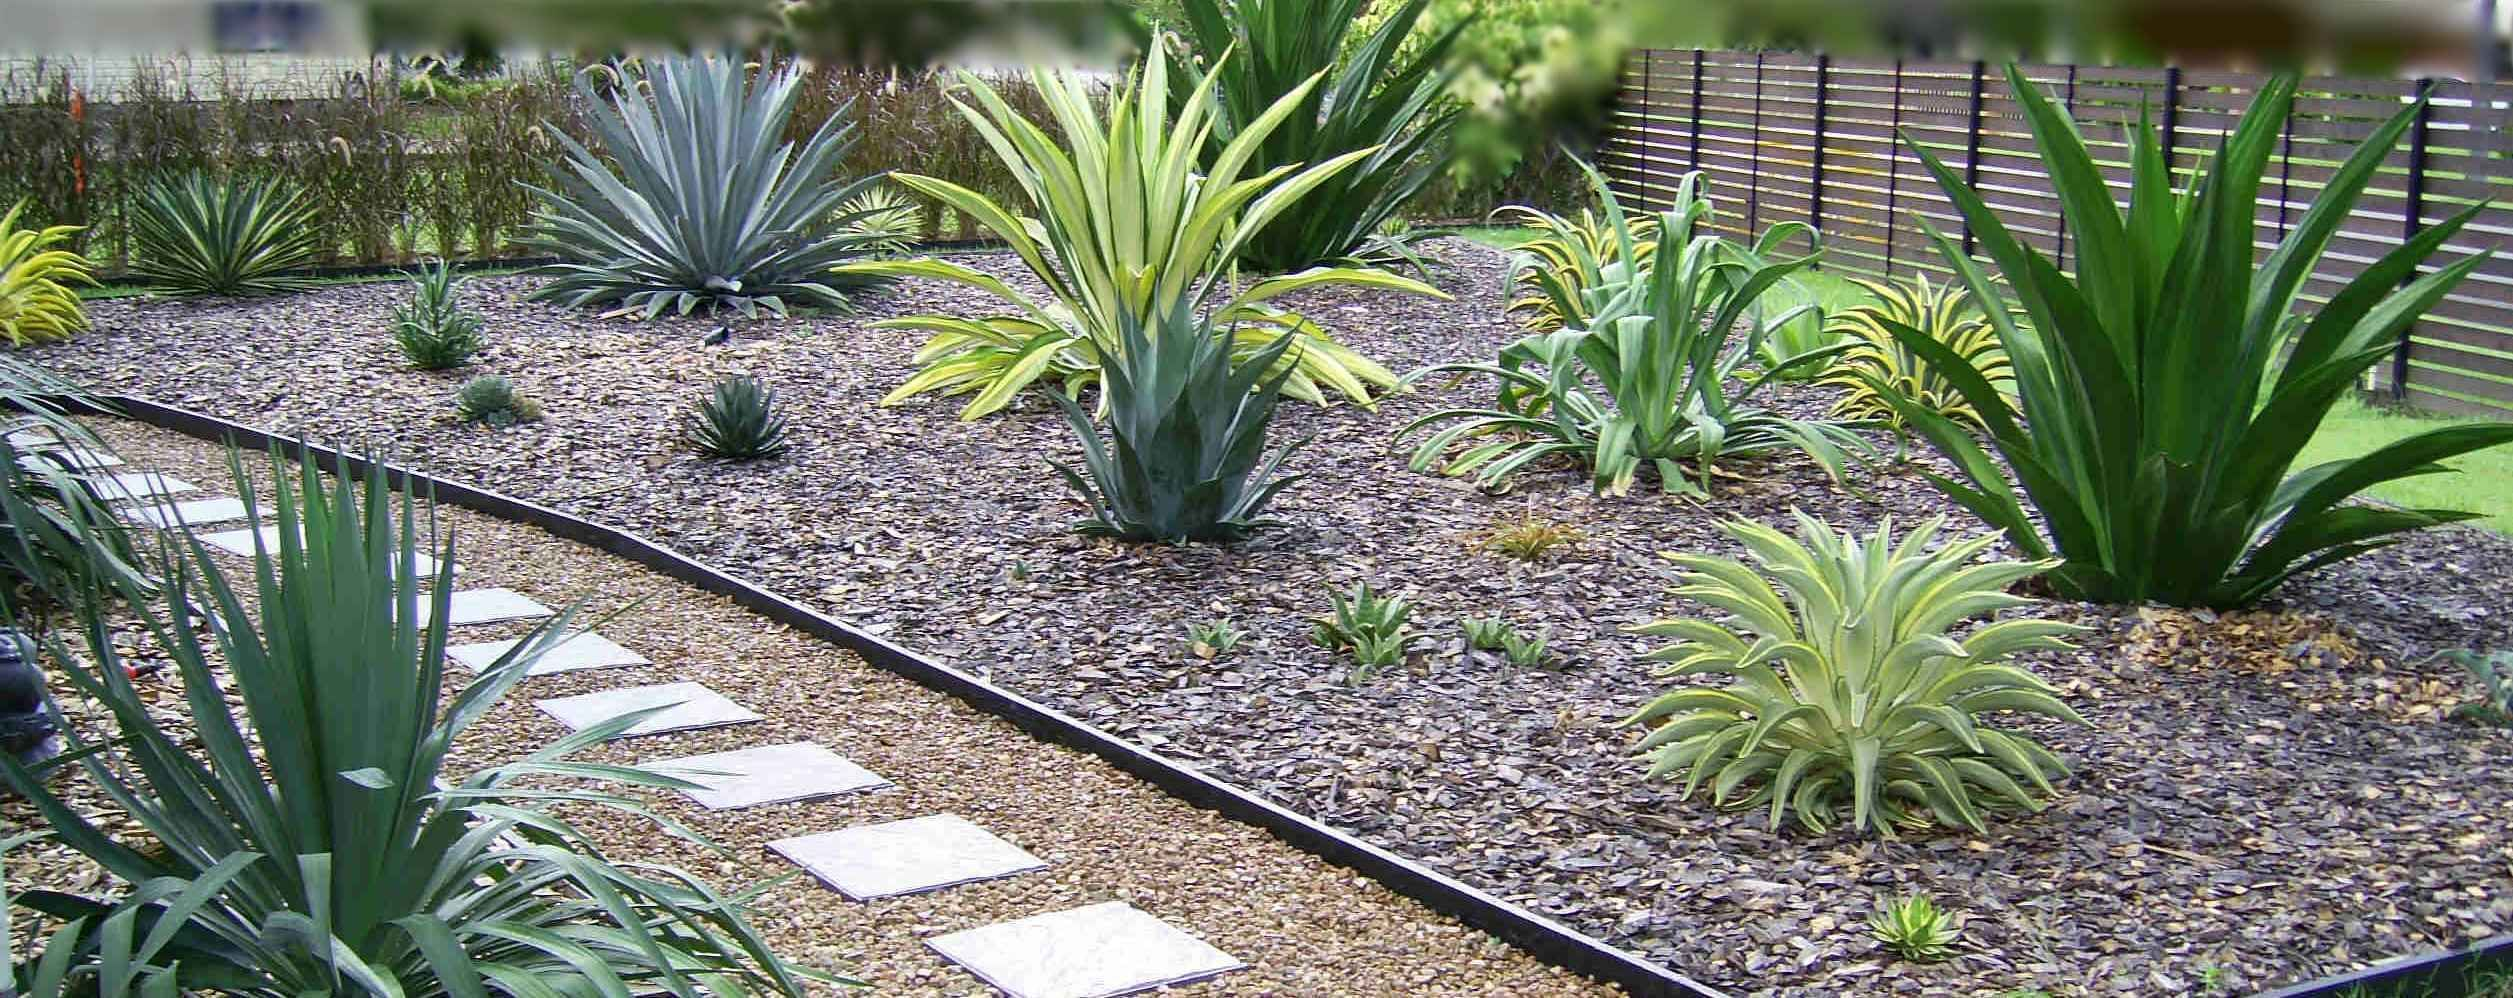 yucca agave plants landscaping garden design ideas